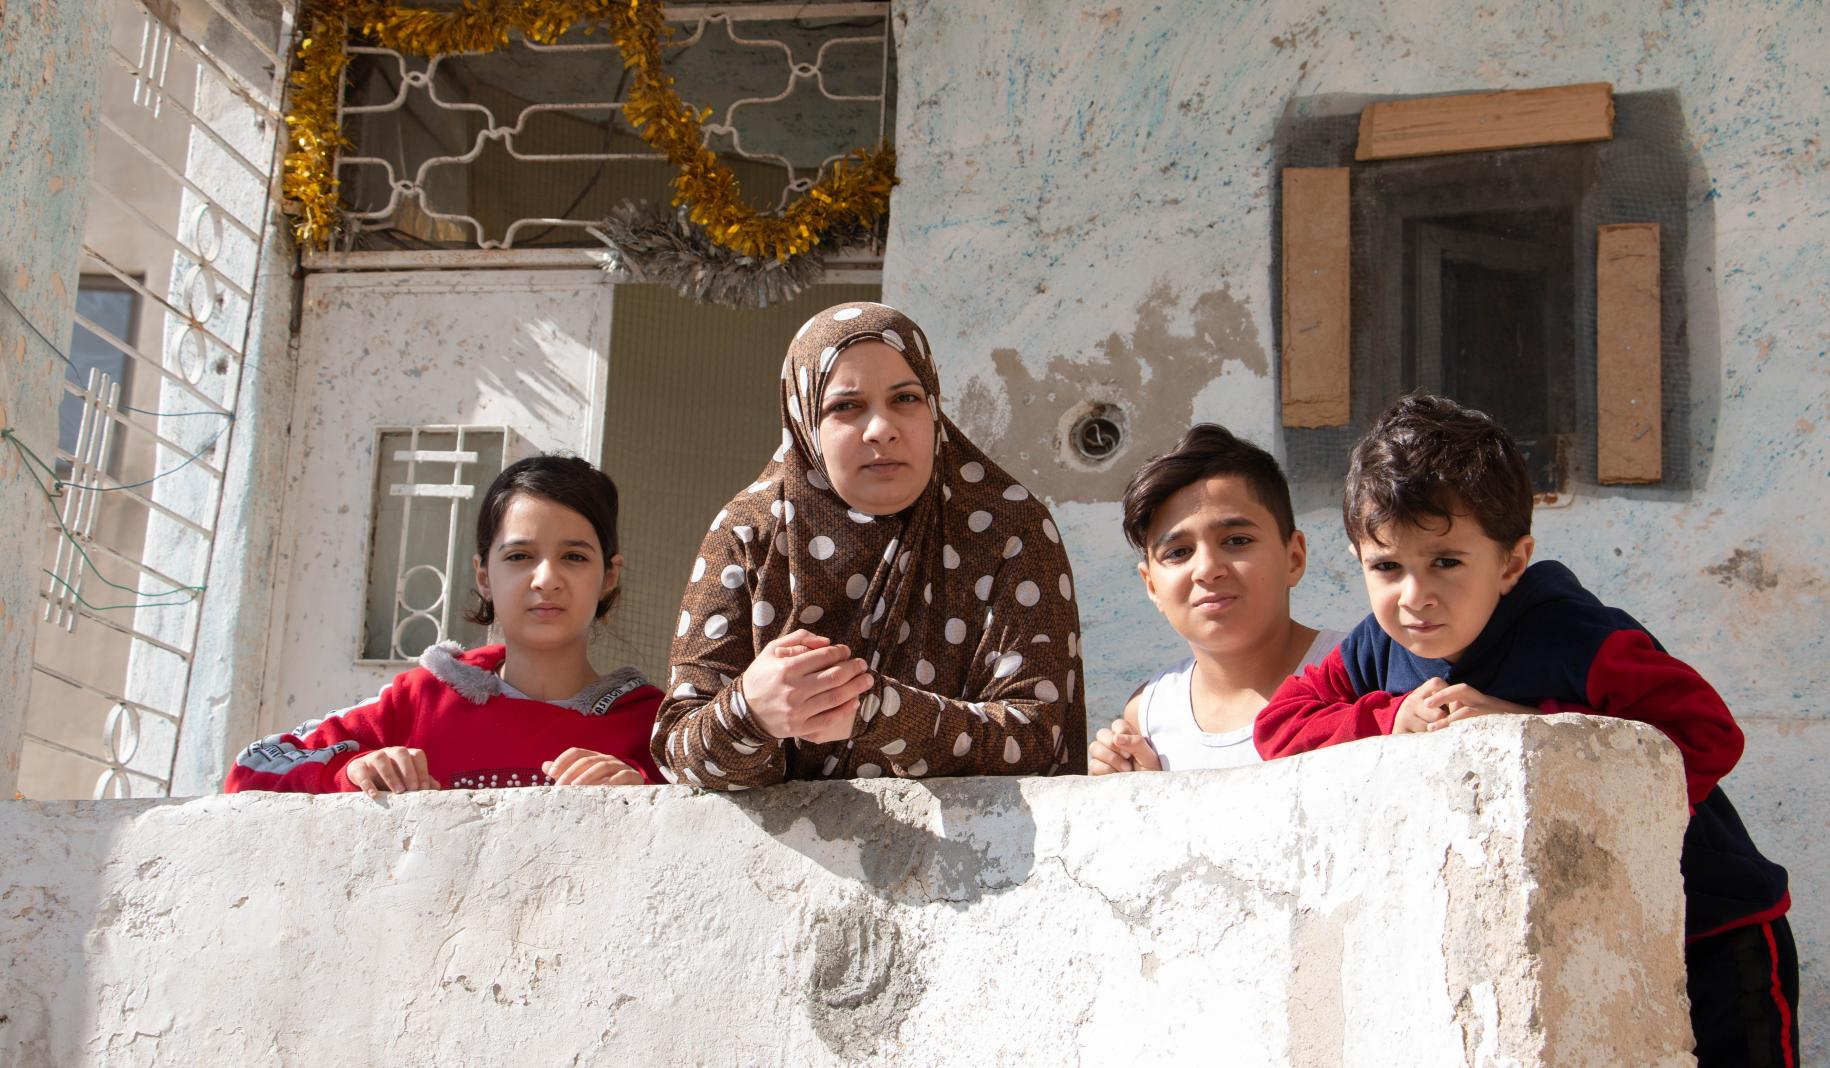 Asma stands with her three children on the porch of their home.